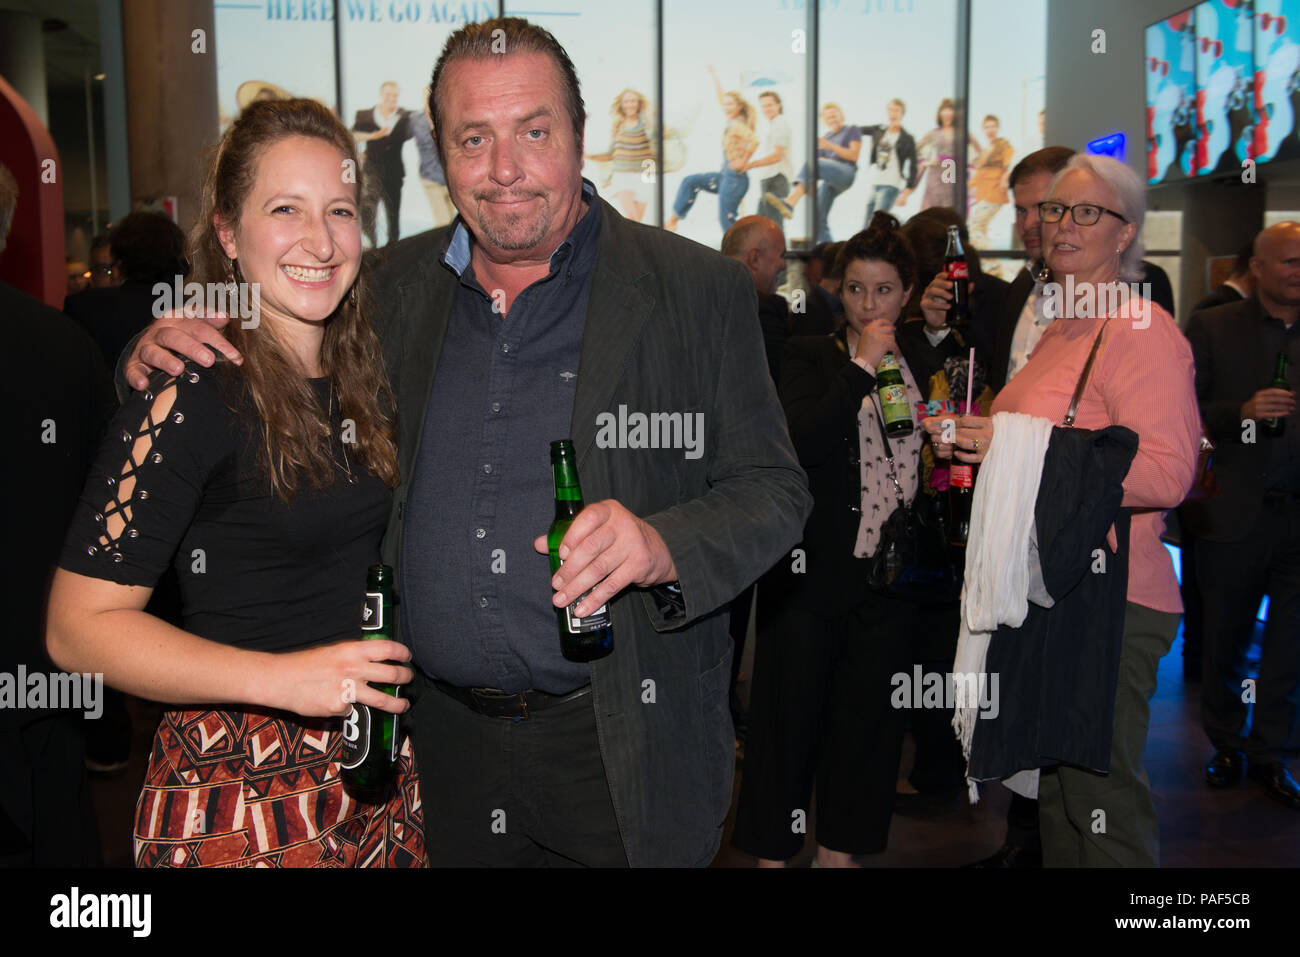 Actor Andreas Giebel with daughter Sarah seen at the openeing ceremony of Filmfest München 2018 - Stock Image